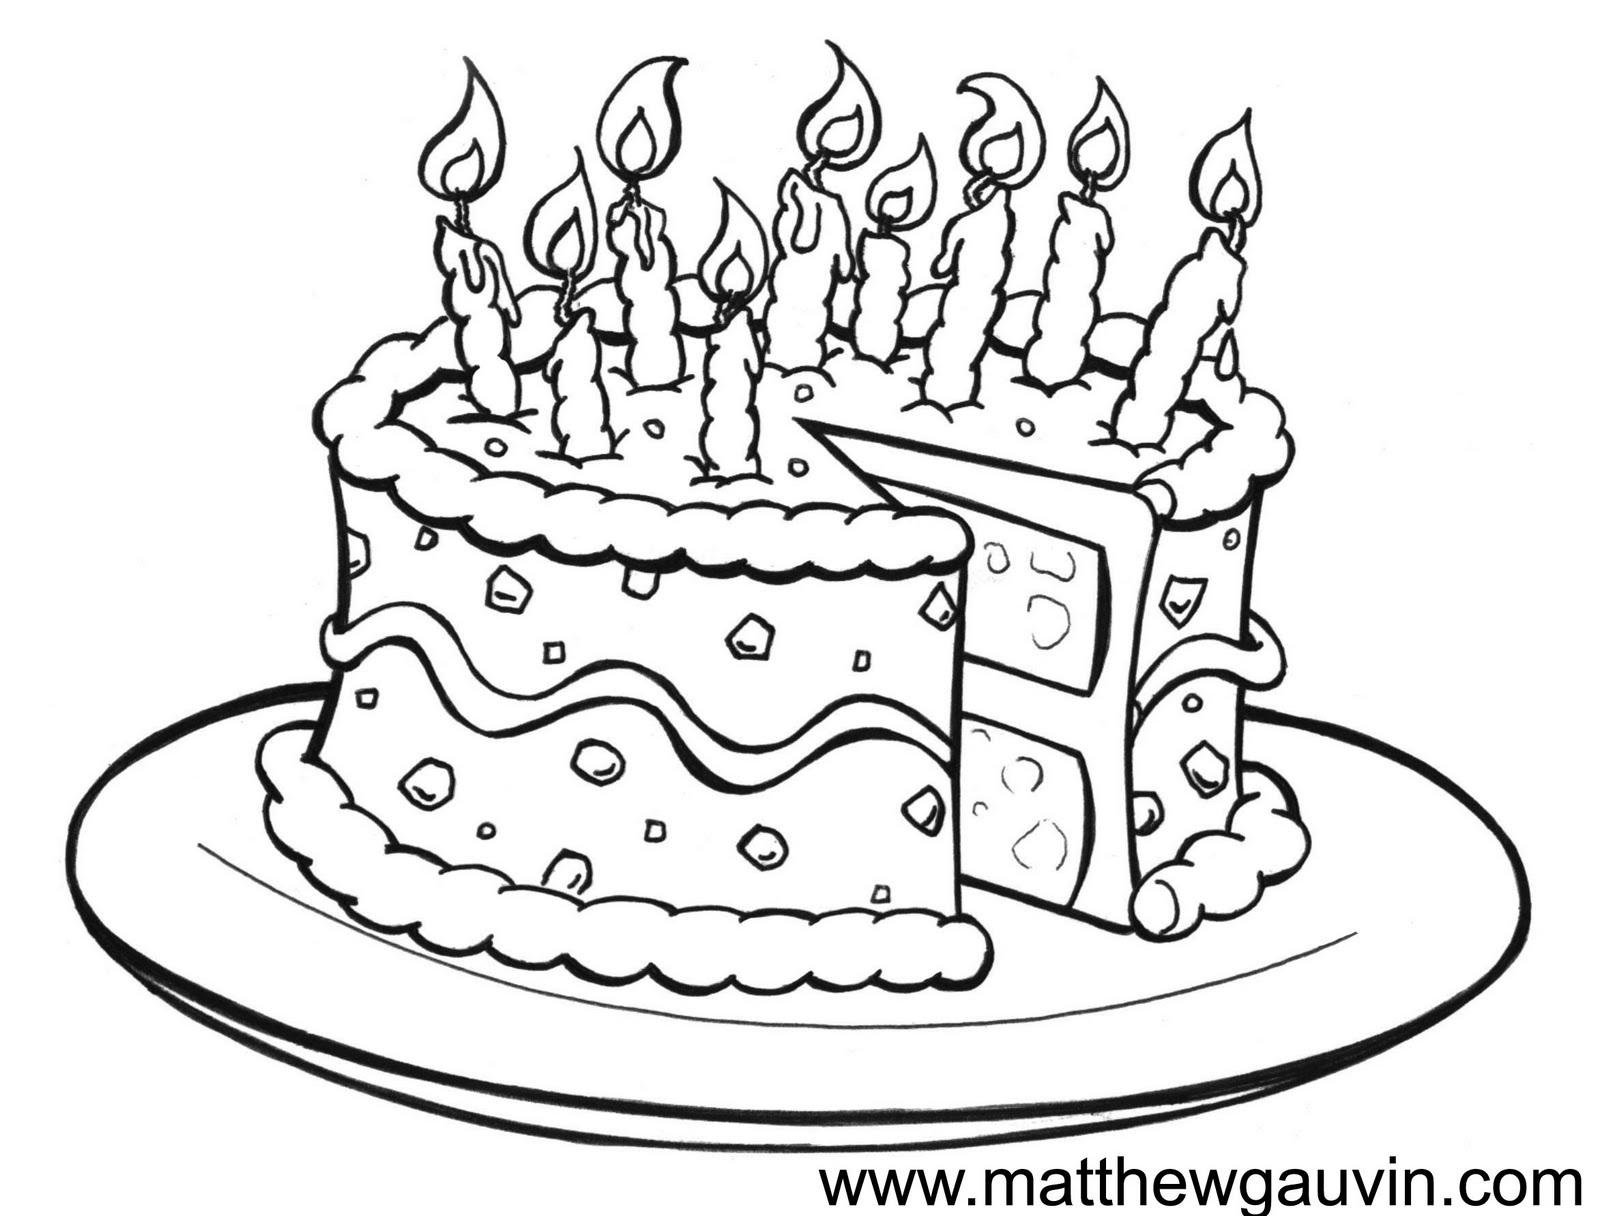 Free Birthday Cake Drawing Download Free Clip Art Free